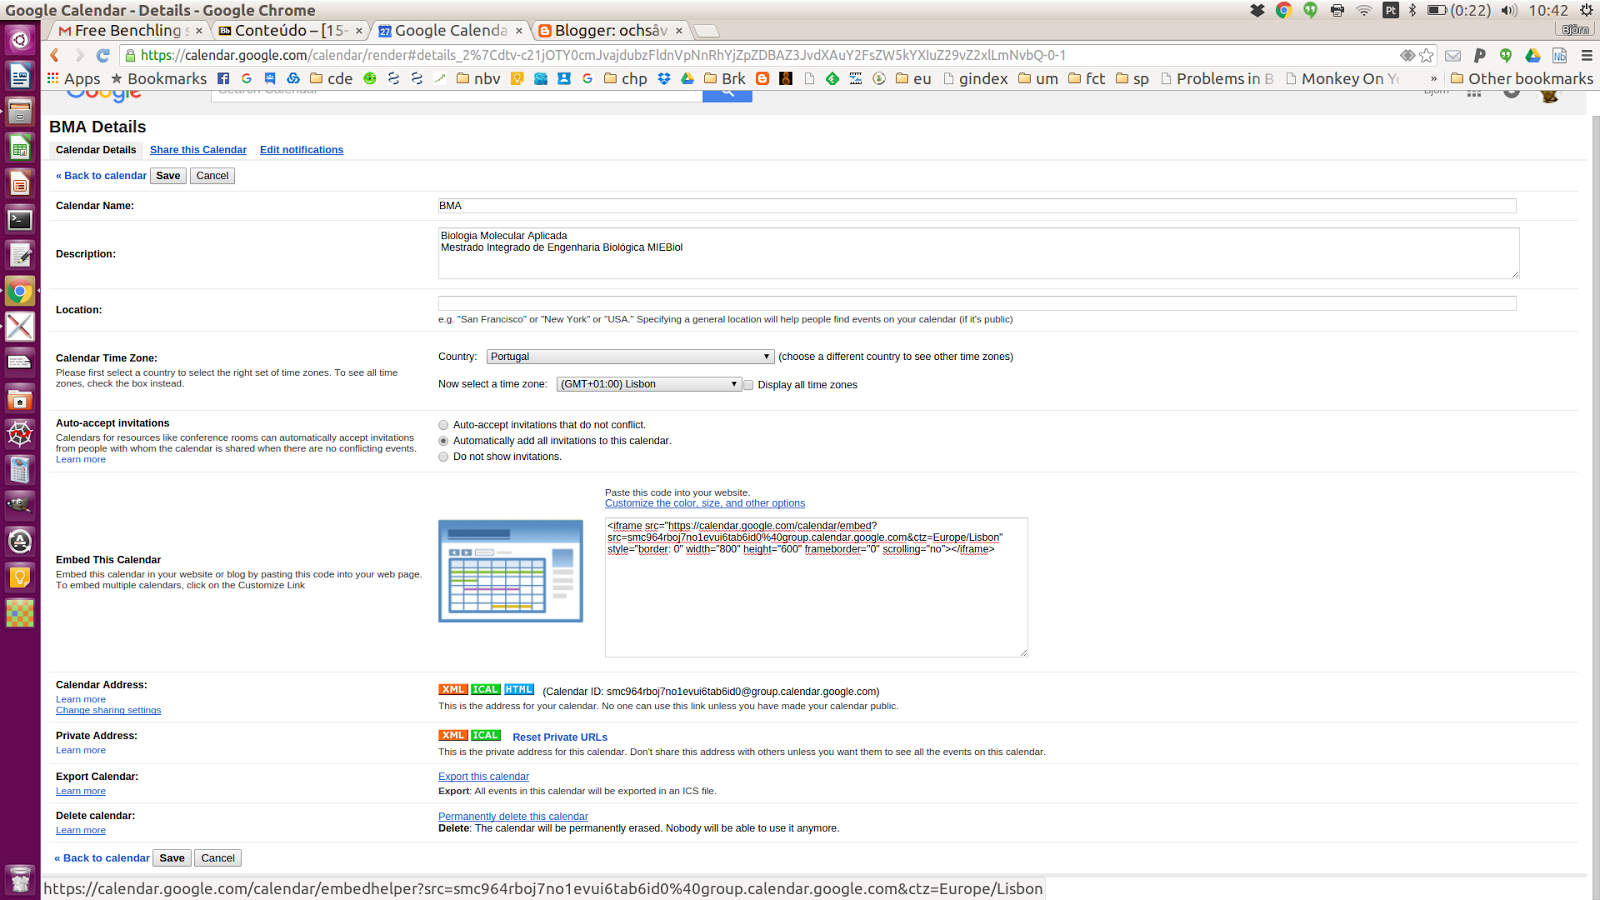 ochsåvidare: How to embed a google calendar in Blackboard